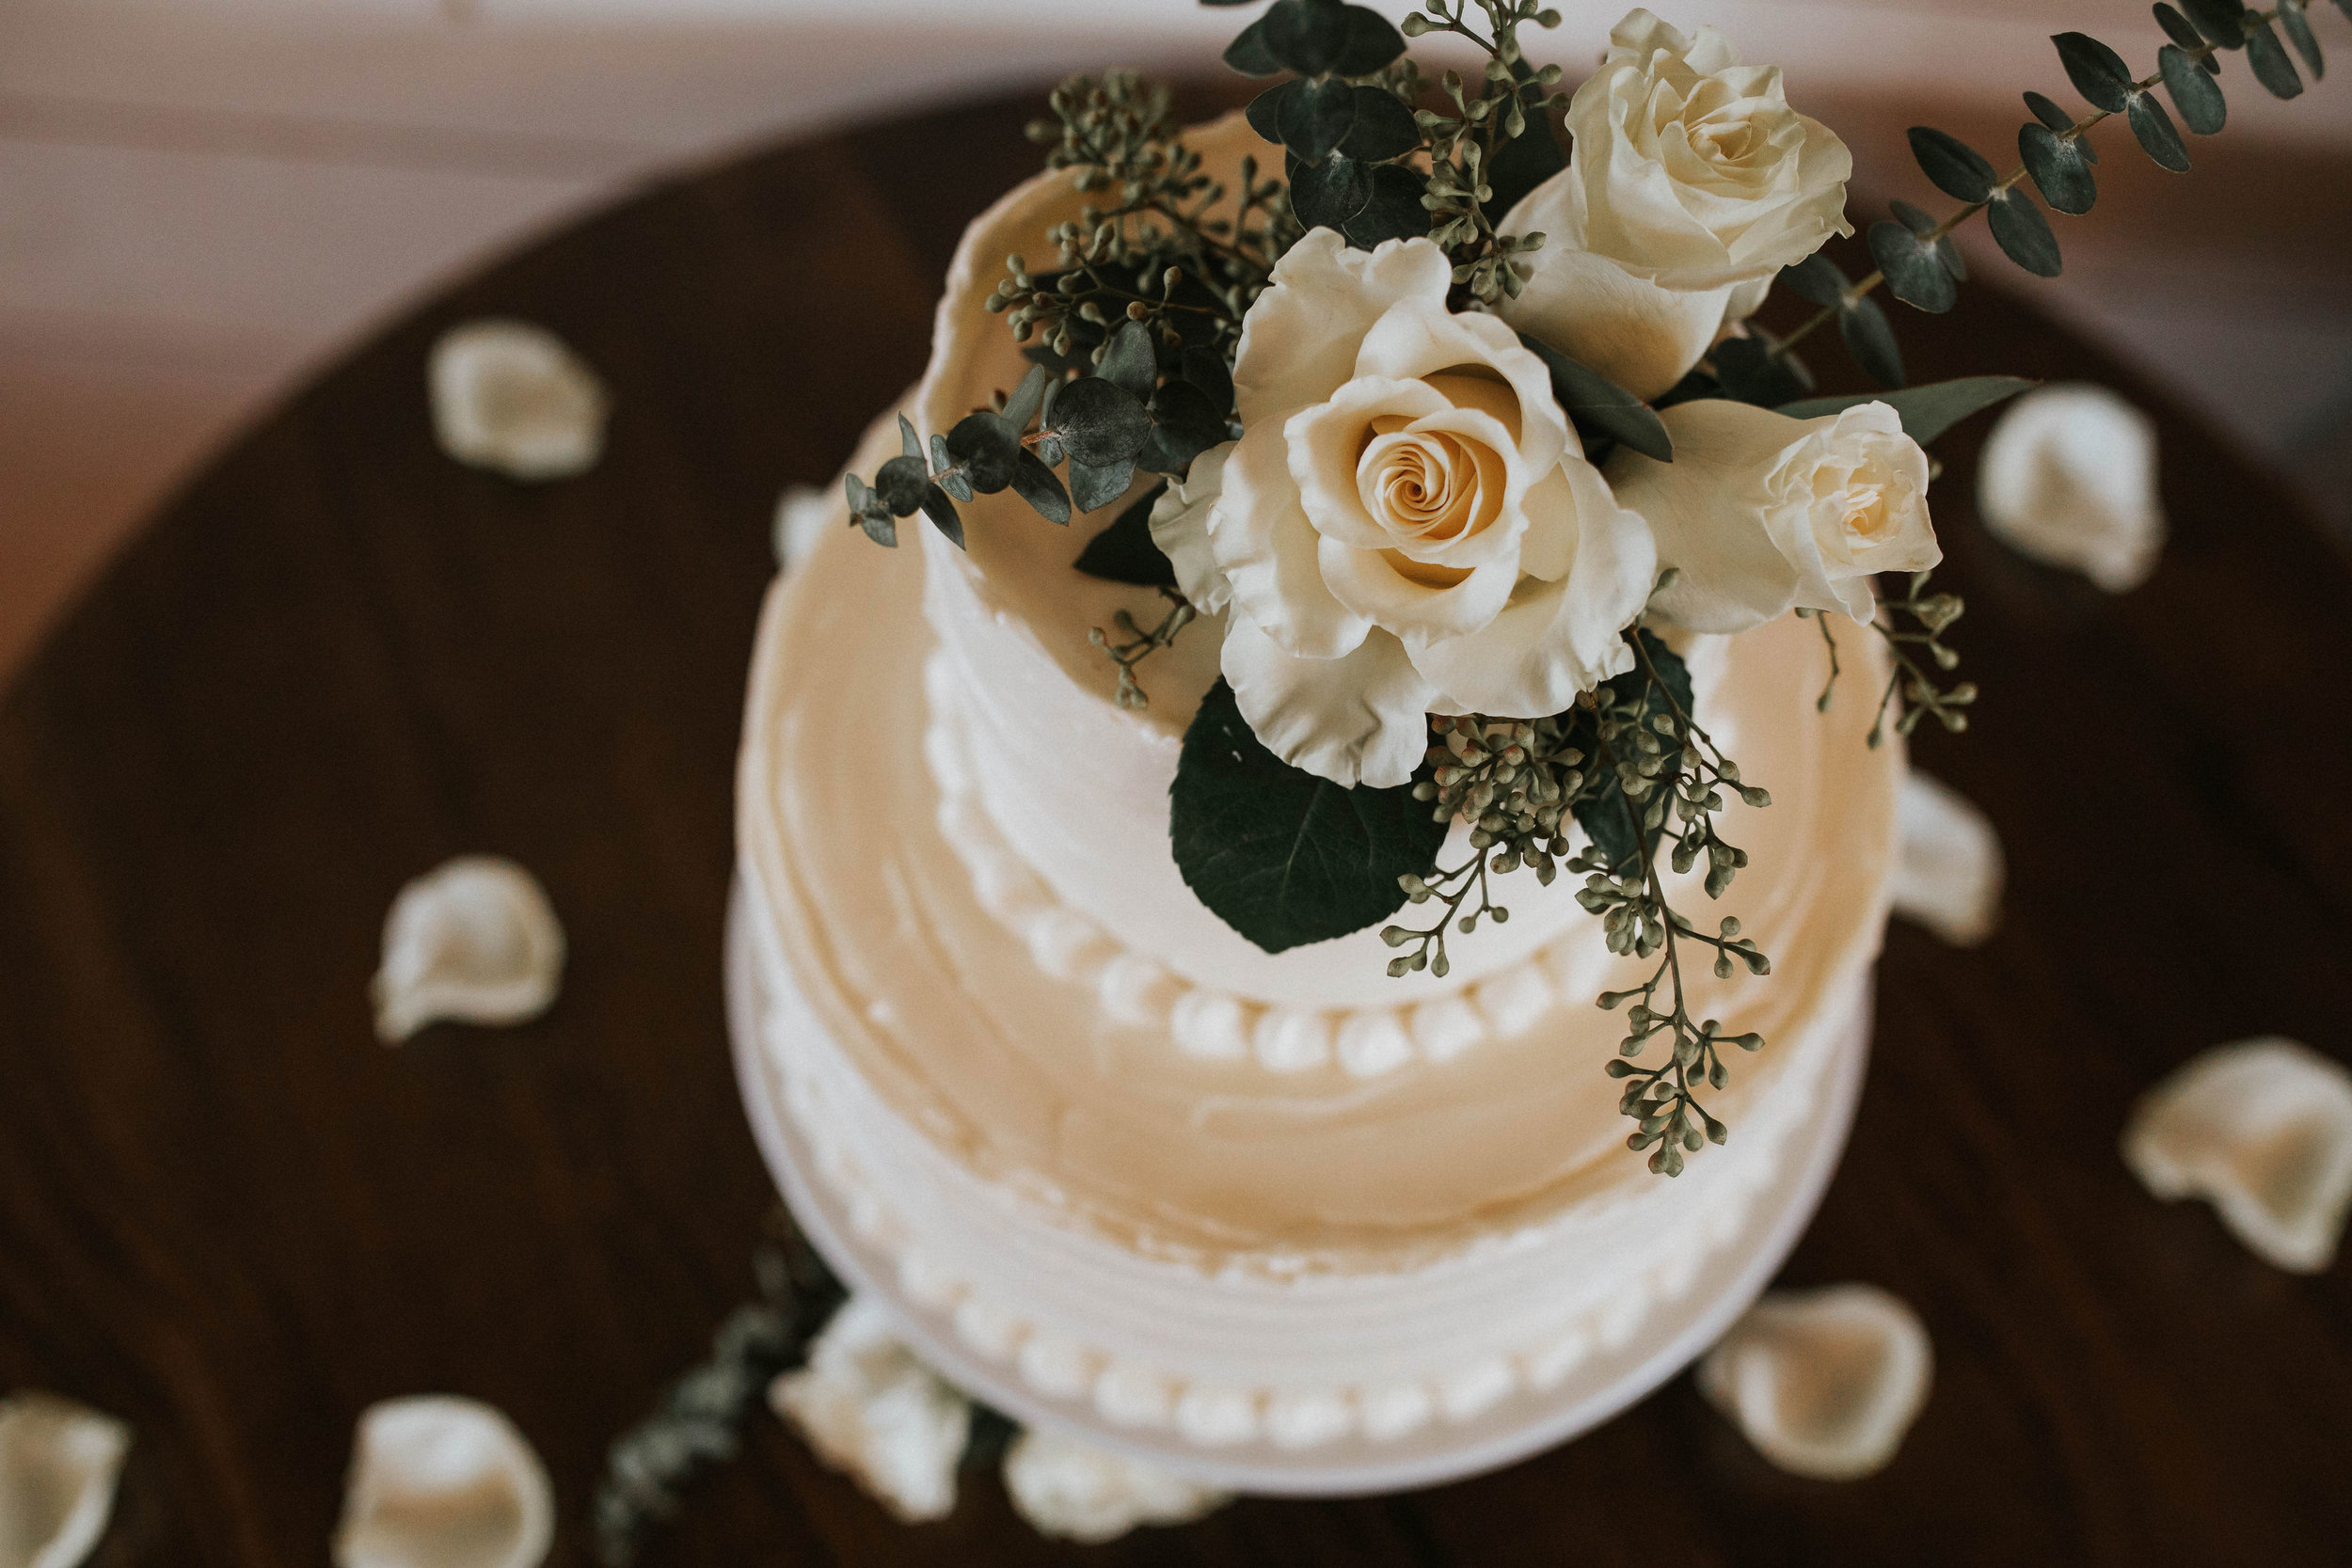 Coordinating florals embellished their couple's cake and added just the right amount of texture.